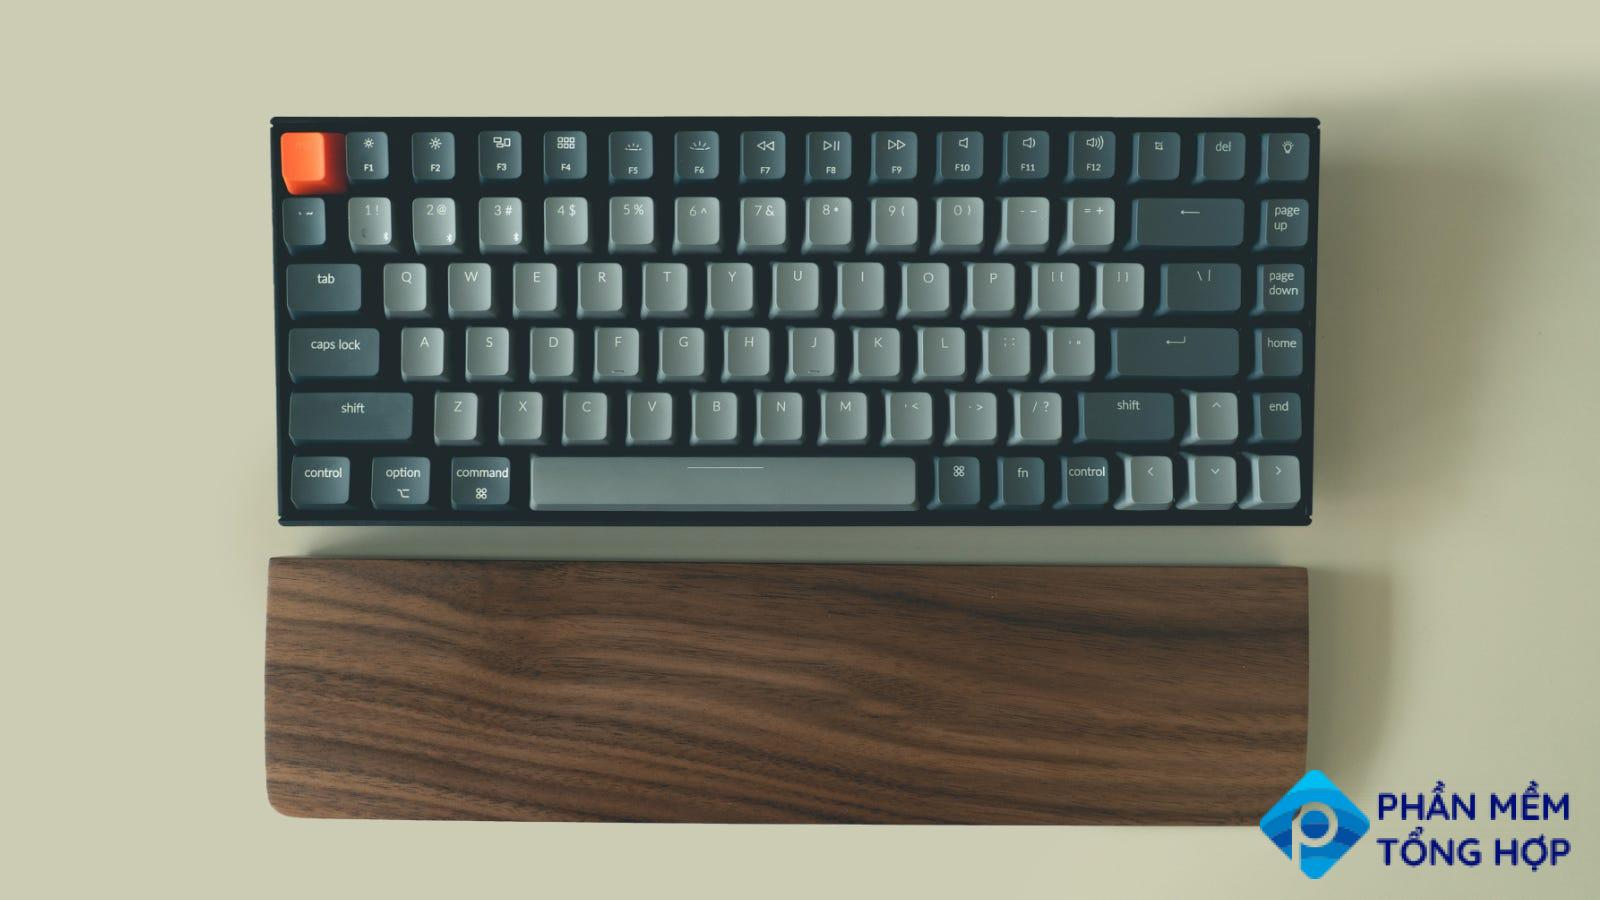 75% mechanical keyboard with a wooden wrist rest